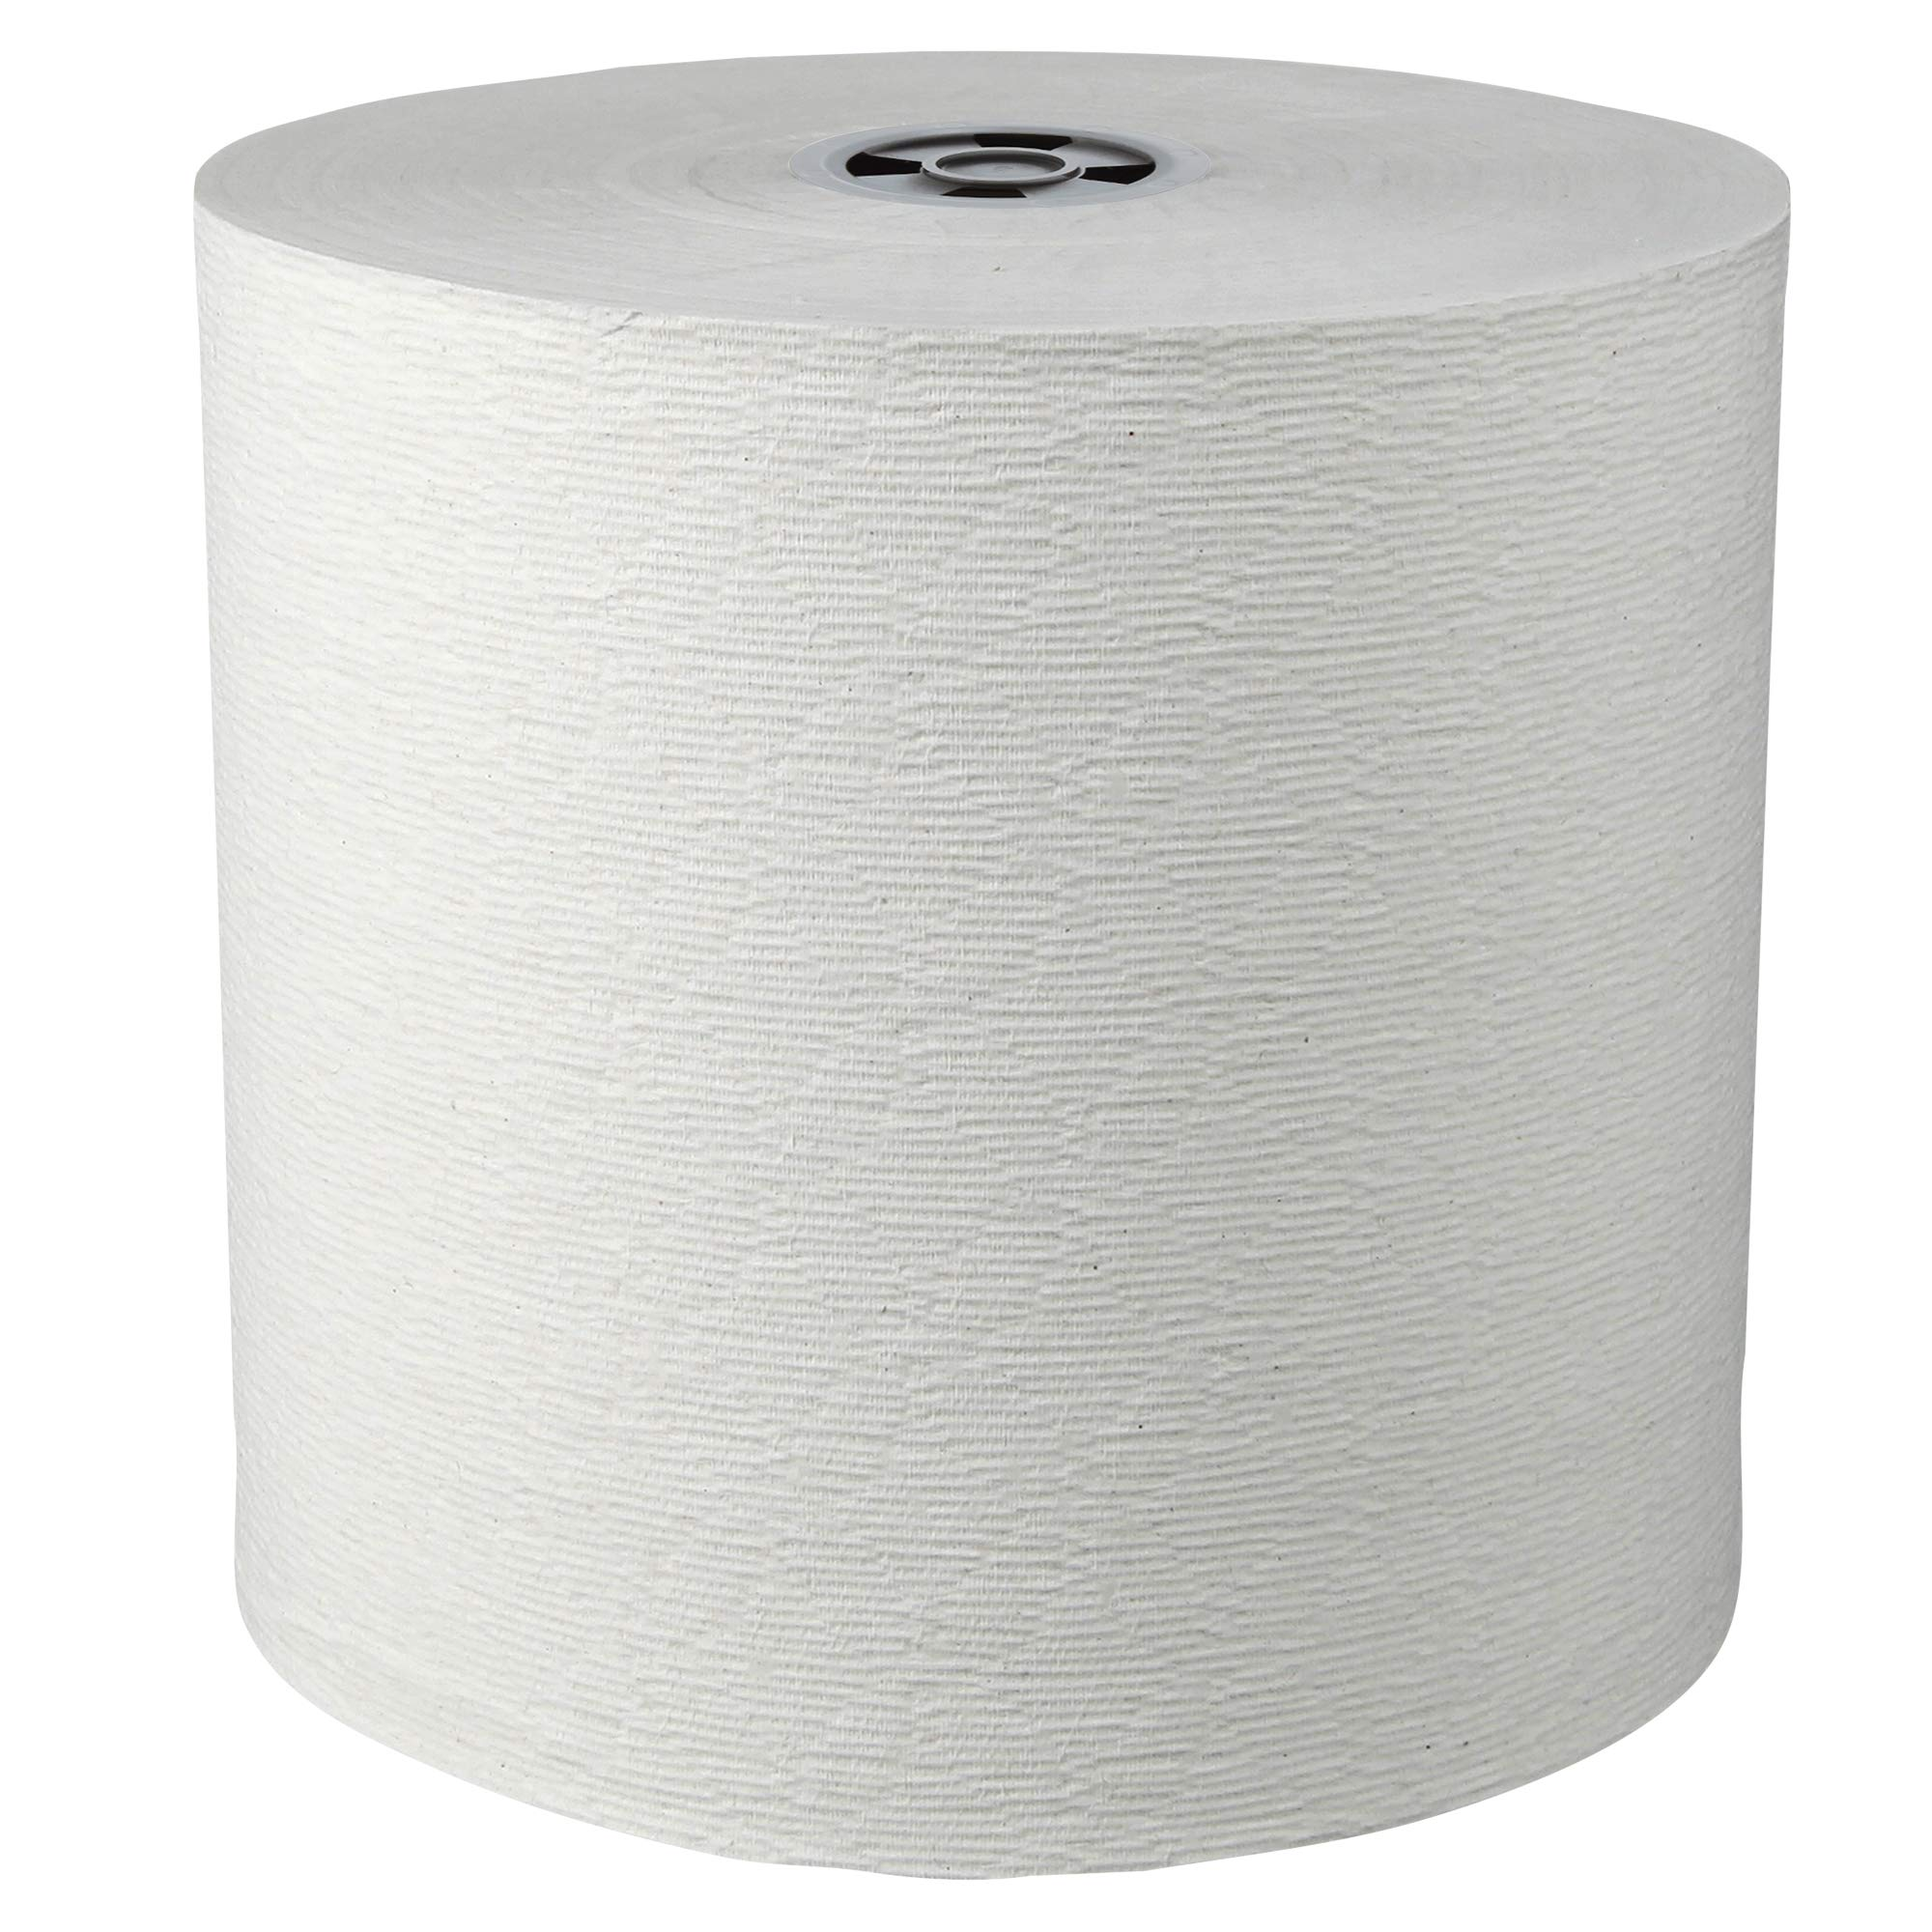 Scott Pro (formerly Kleenex) Hard Roll Paper Towels (25639) with Premium Absorbency Pockets, for MOD Dispenser (Grey-Colored Core), 700' / Roll, 6 White Rolls / Case, 4,200 feet - Same Kleenex quality, now Scott branded